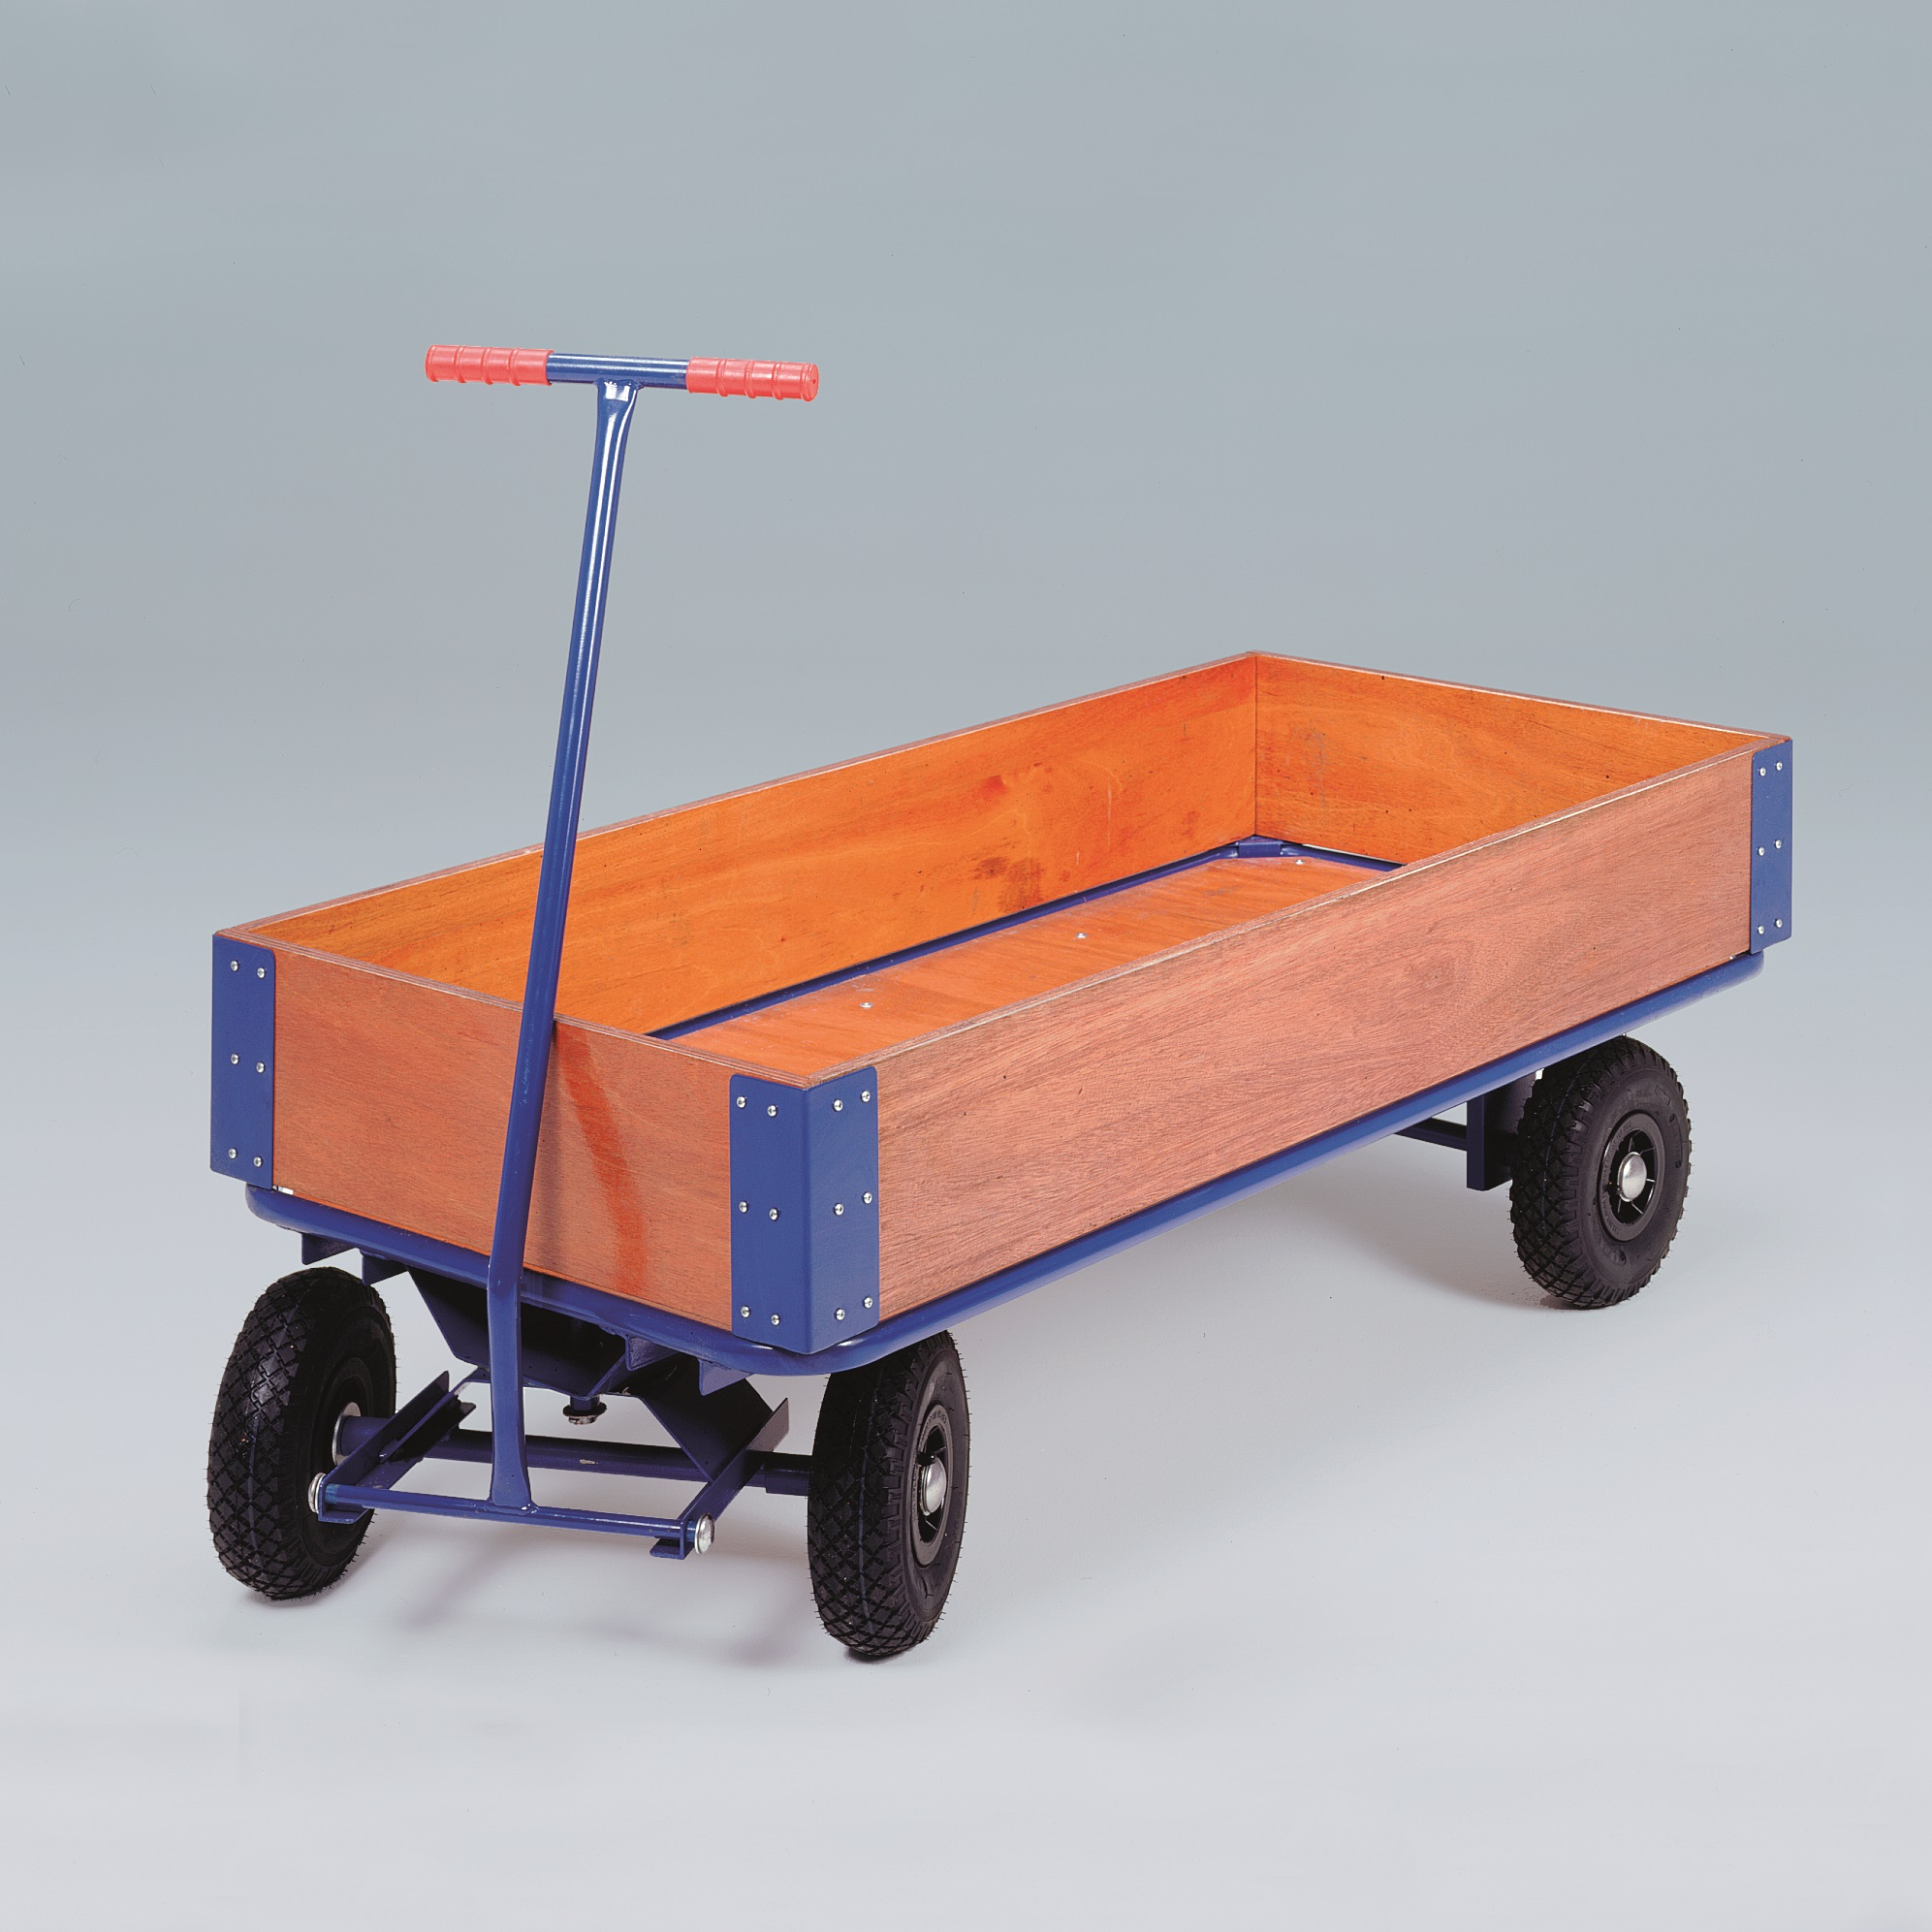 TSL205NR - Turntable-Flatbed-Light-Wood sides